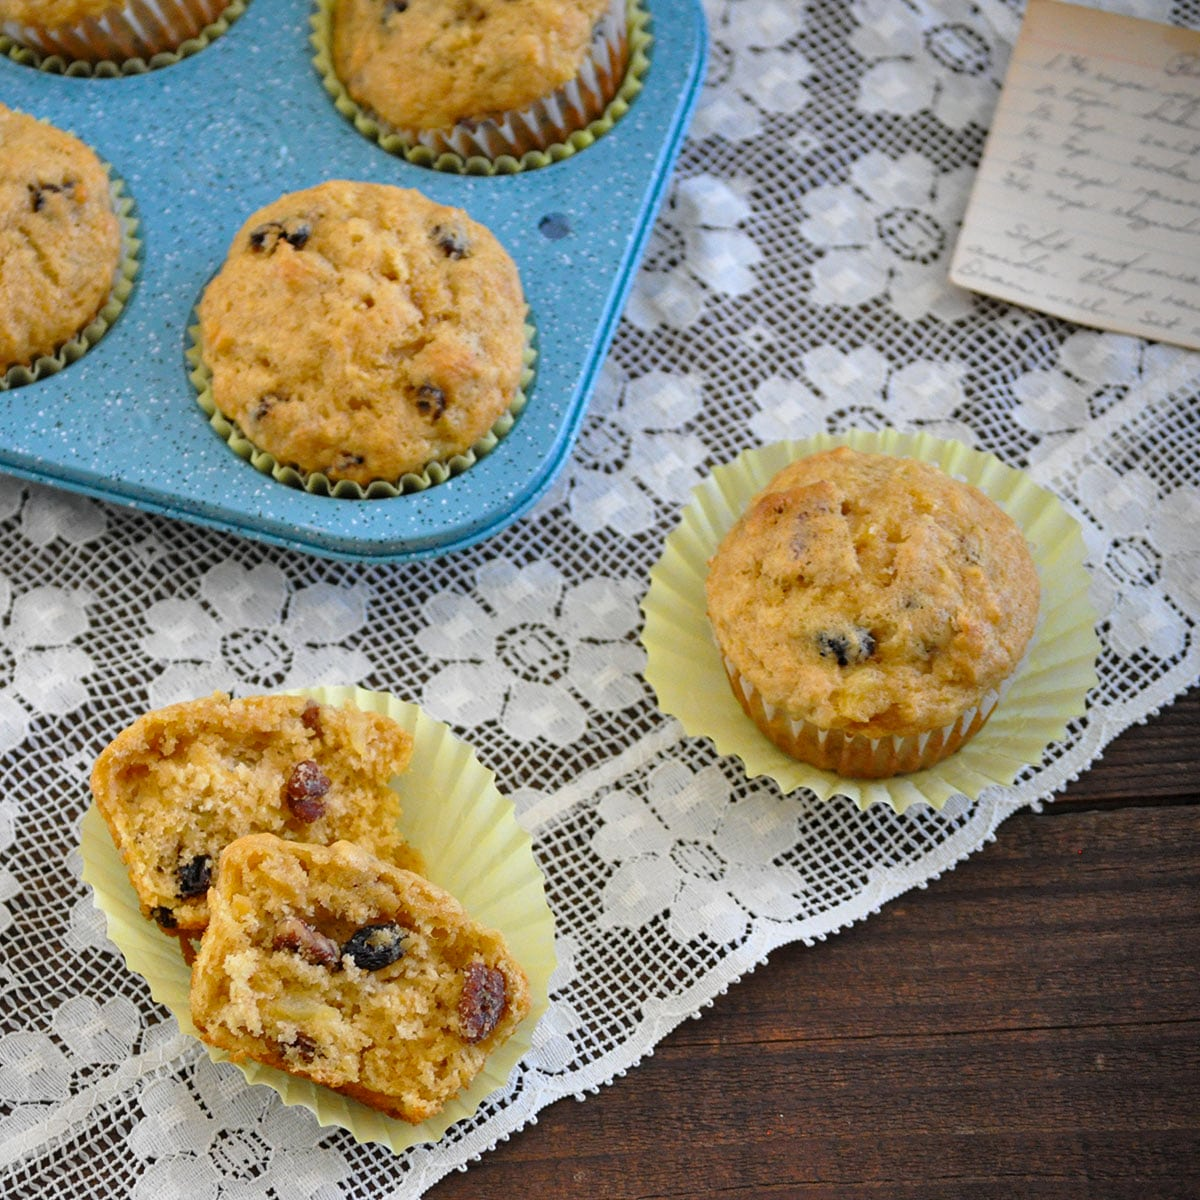 pineapple pecan muffins on a lace doilie